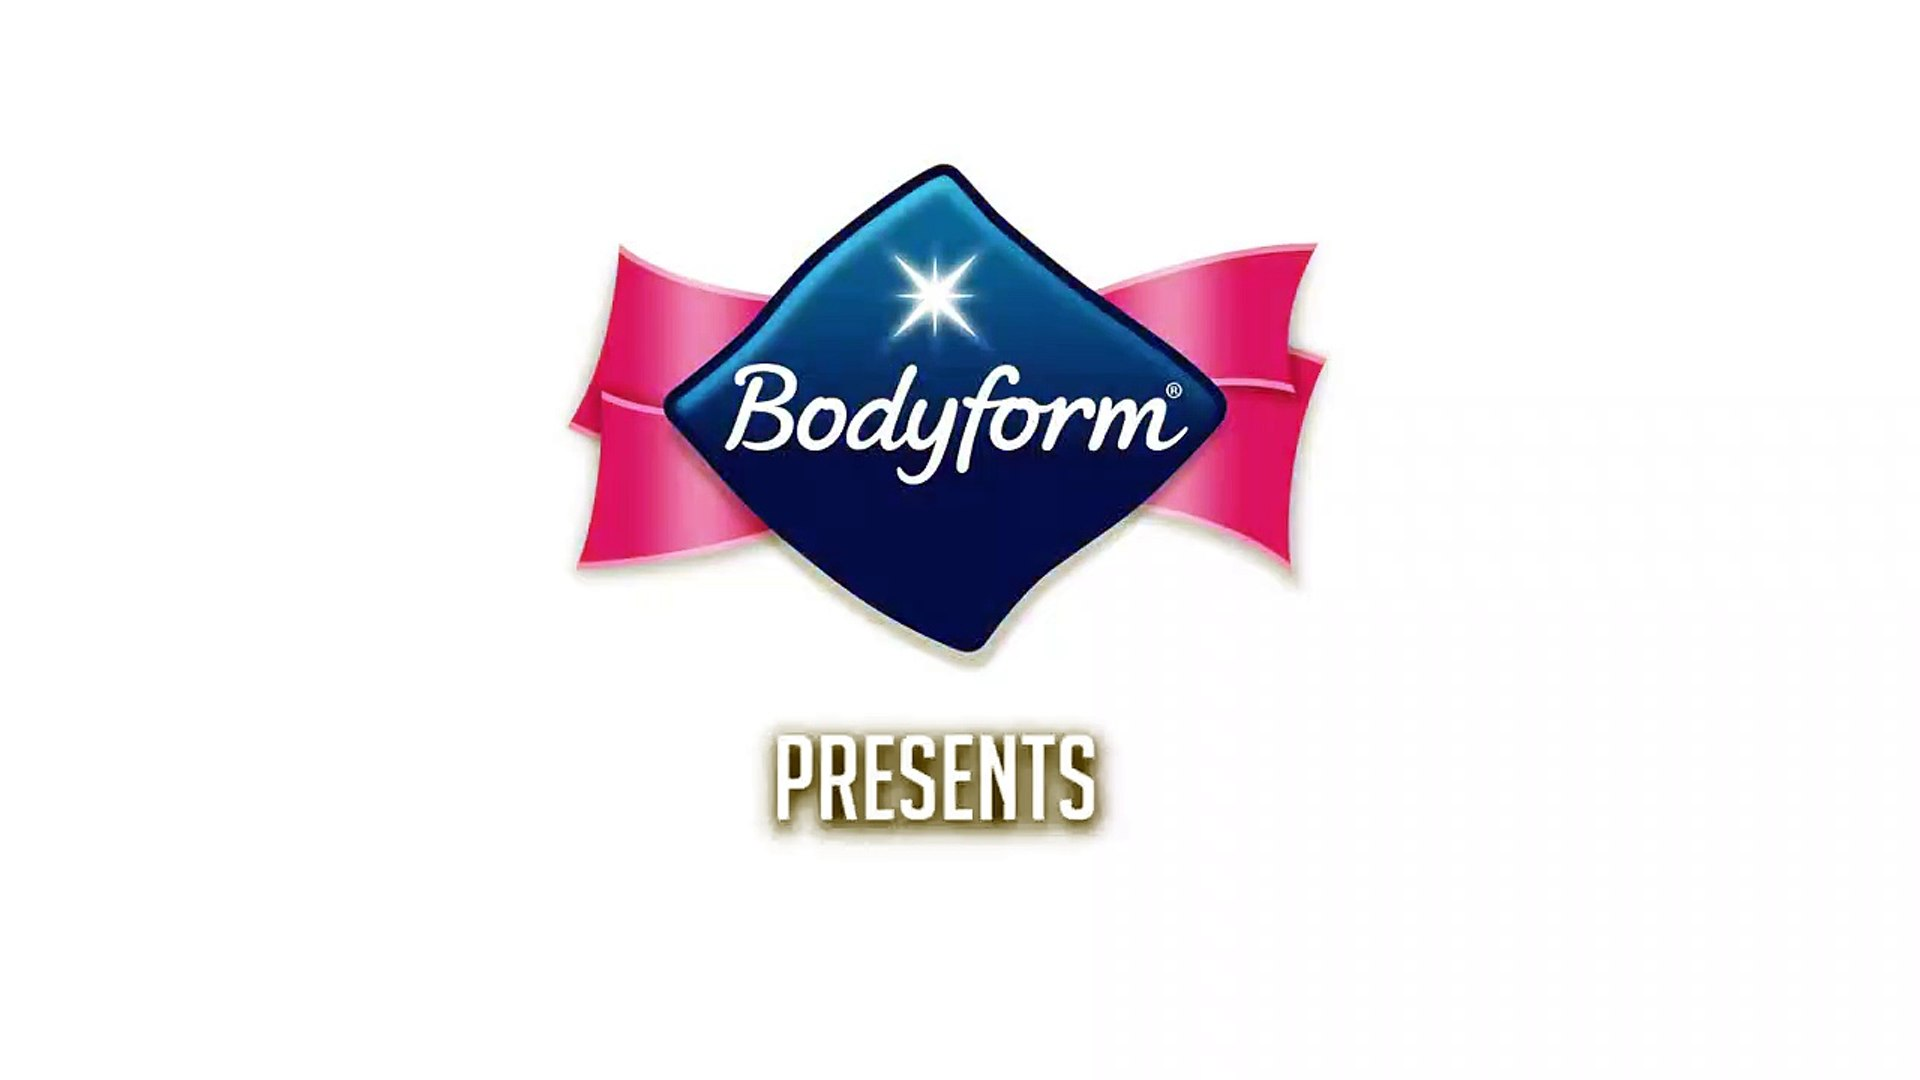 Bodyform presents - Rising to The Challenge with Saara Aalto and Sam Bailey _ The X Factor UK